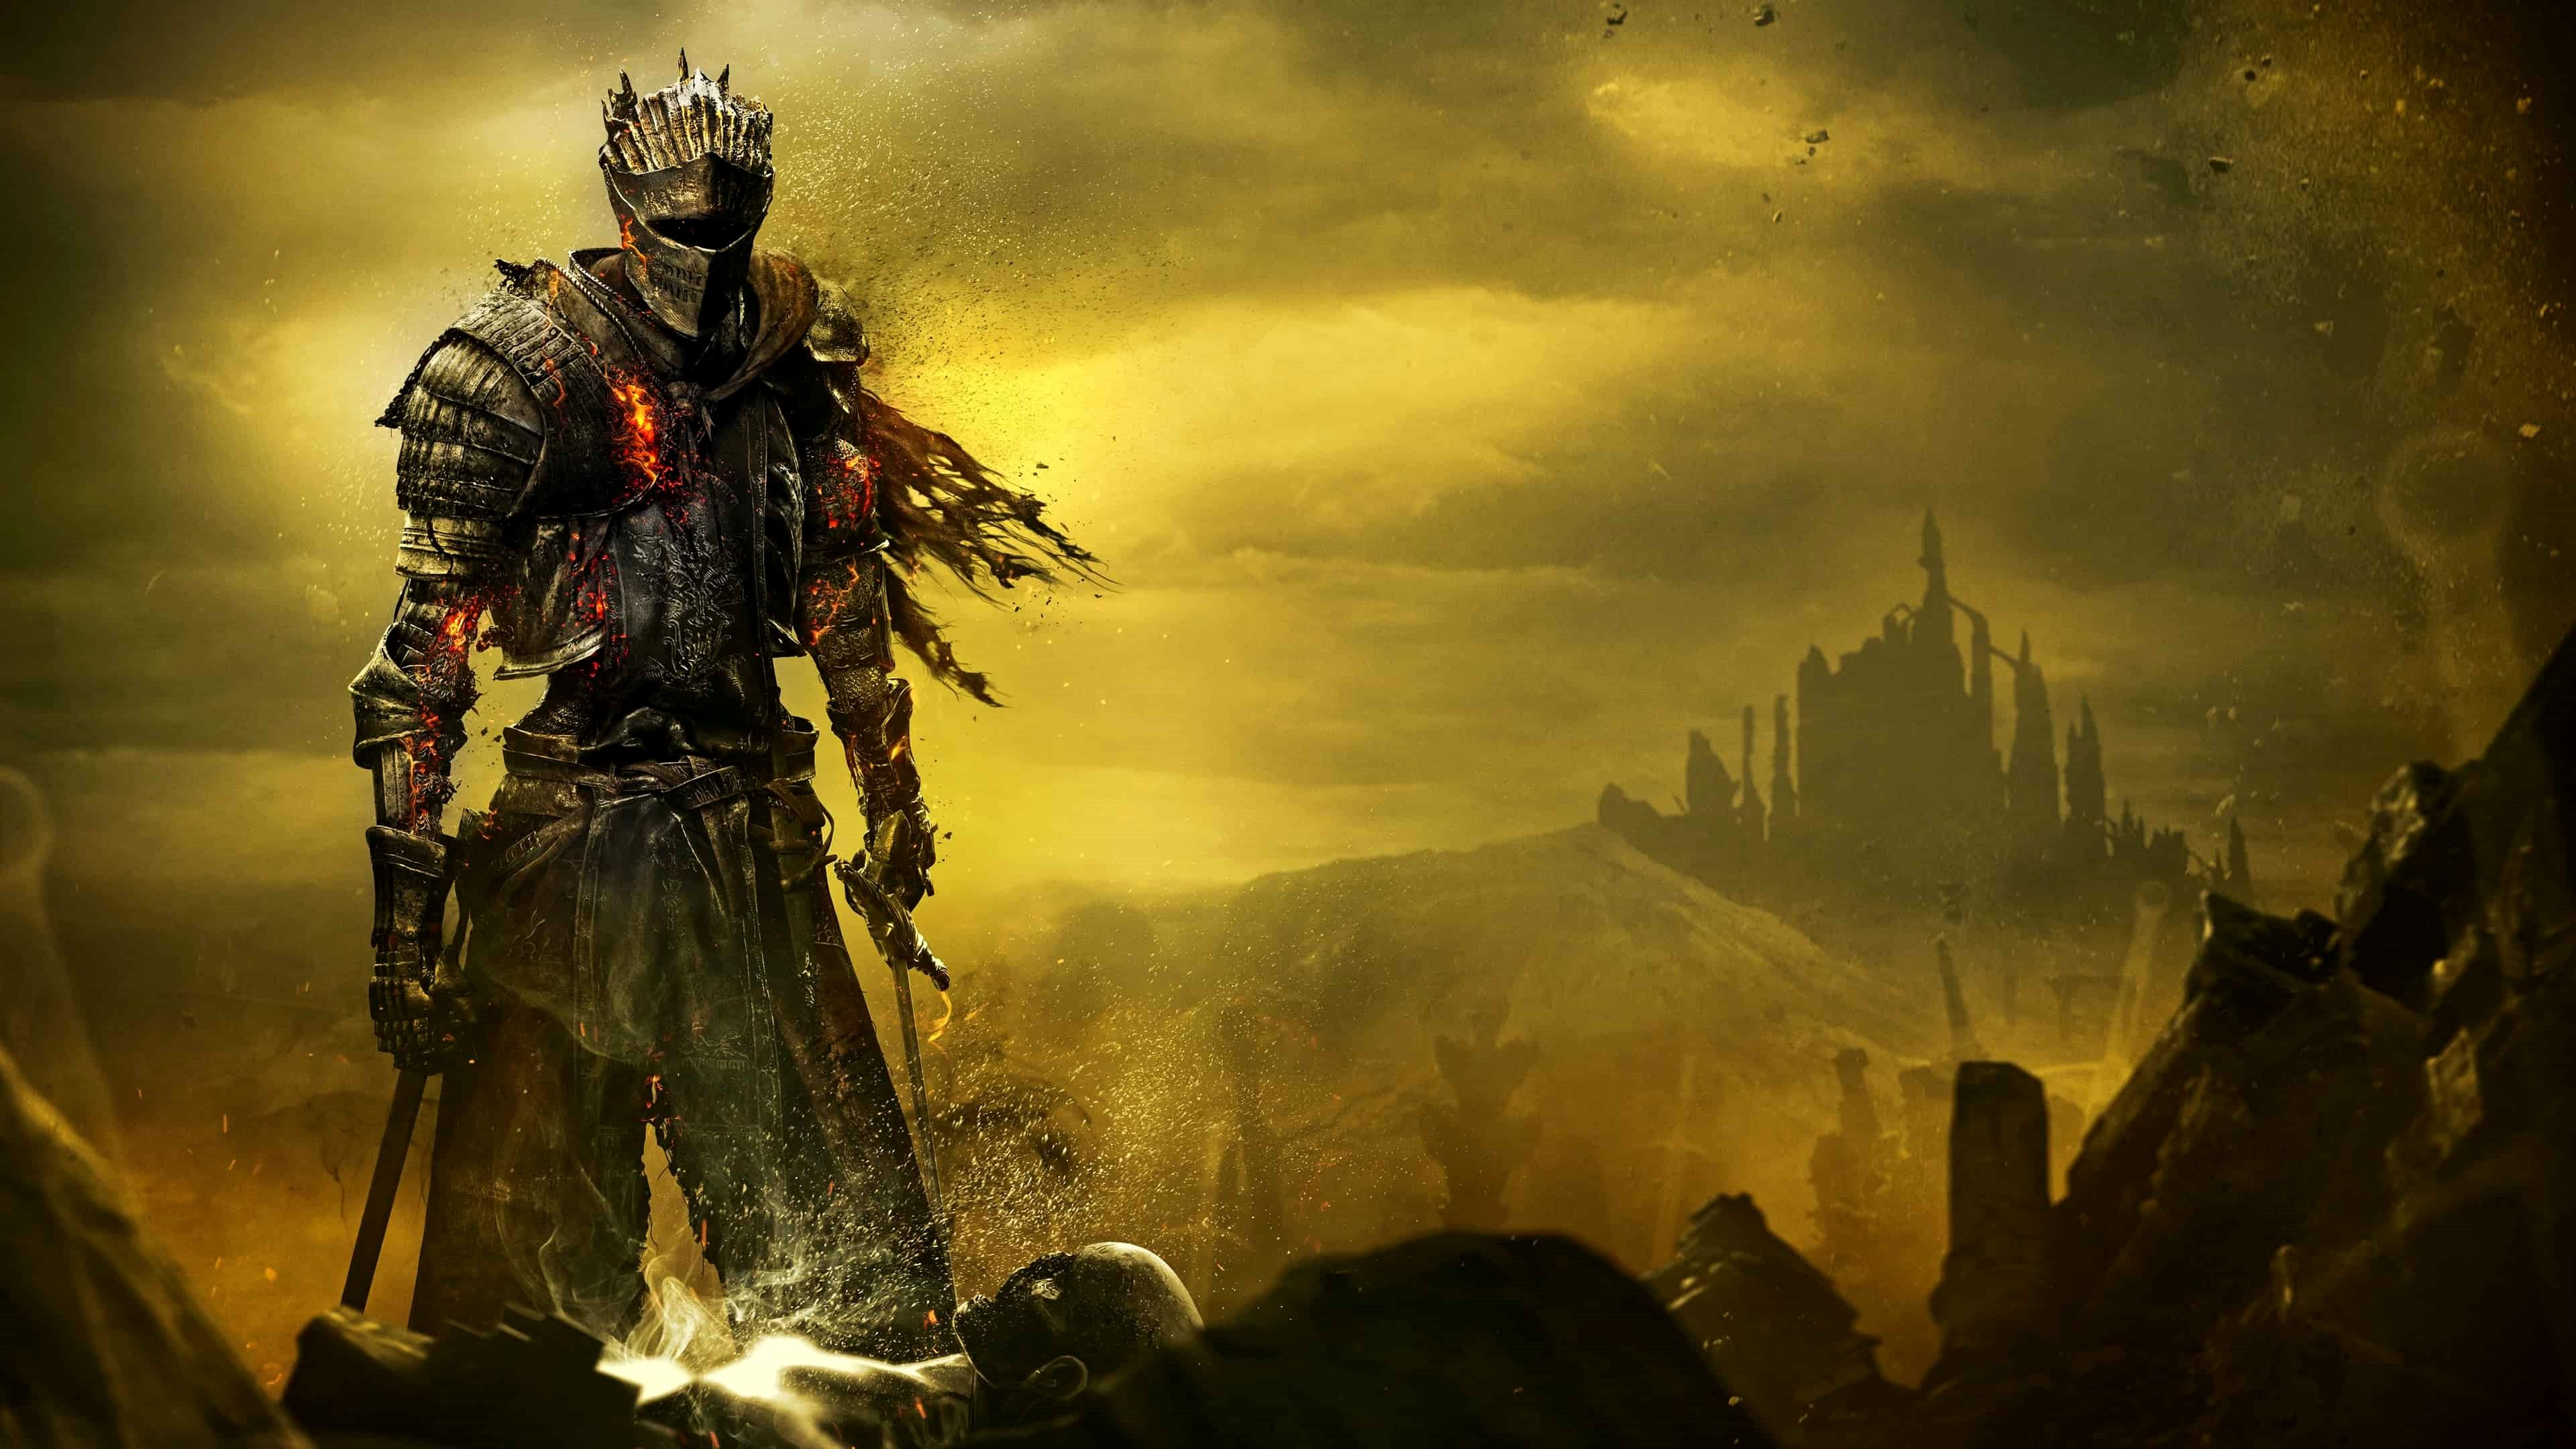 Wallpapers 4k De Dark Souls Trick Di 2020 Dark Souls